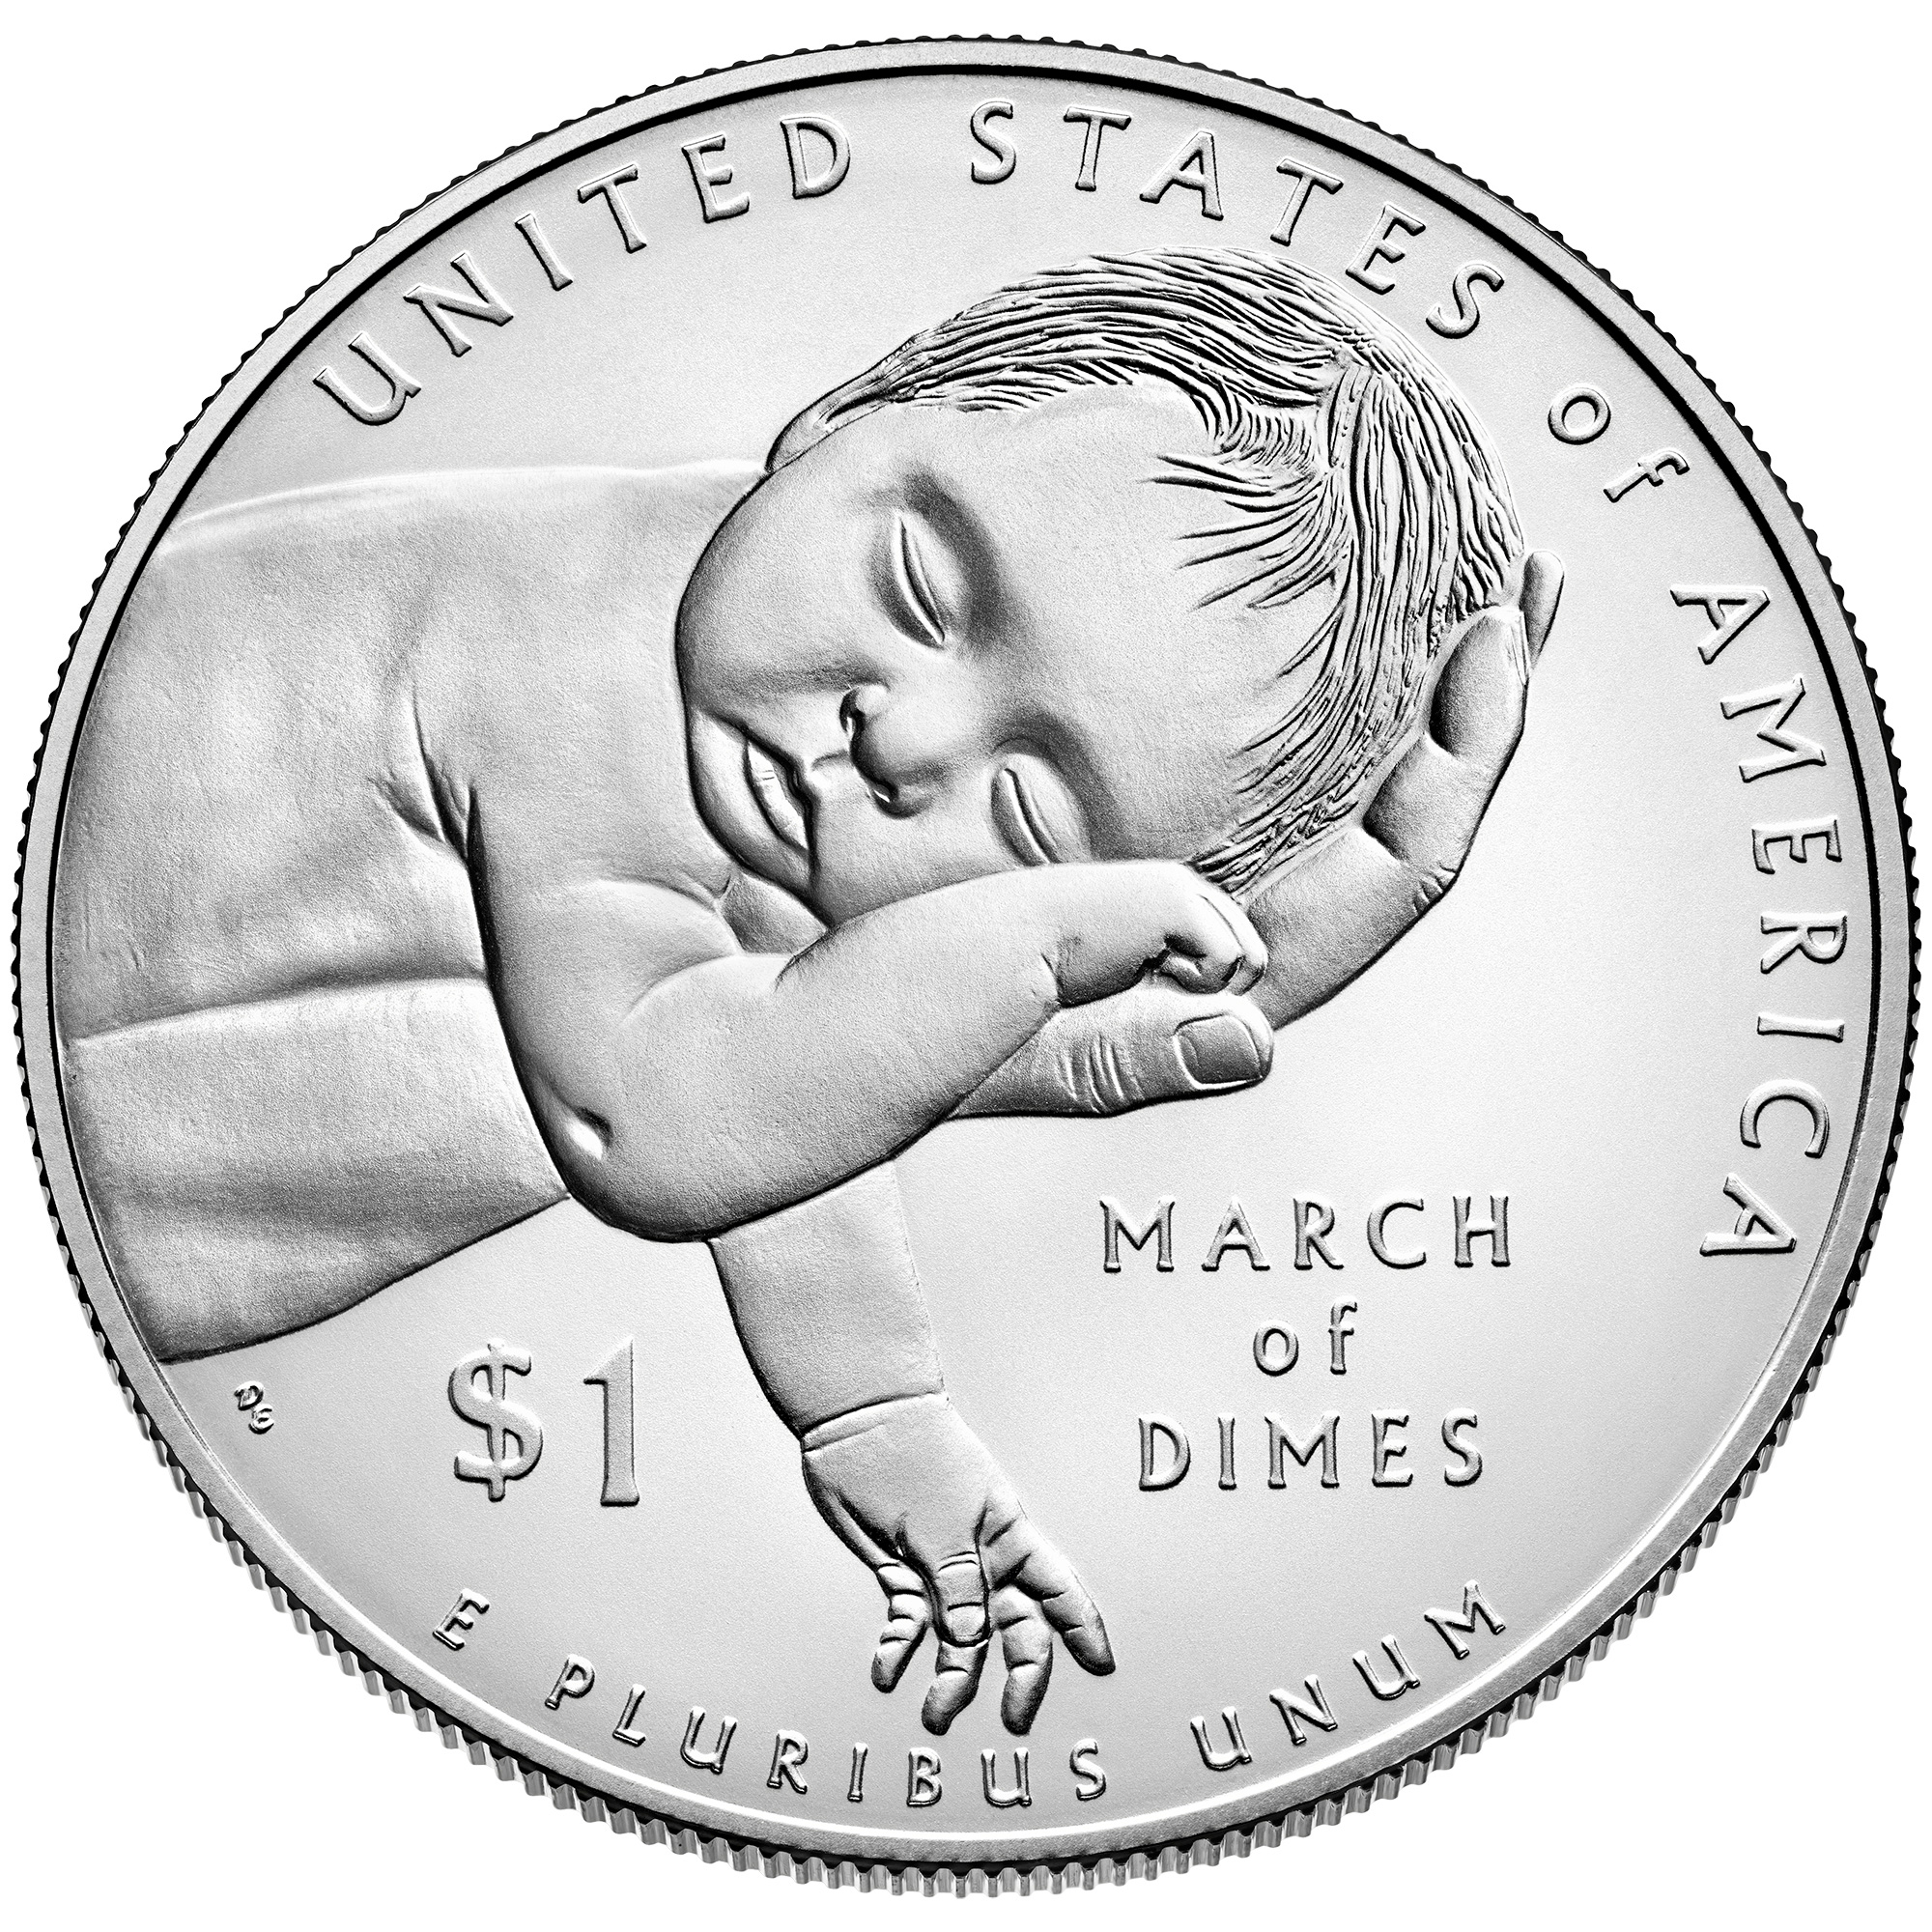 2015 March Of Dimes Commemorative Silver One Dollar Uncirculated Reverse